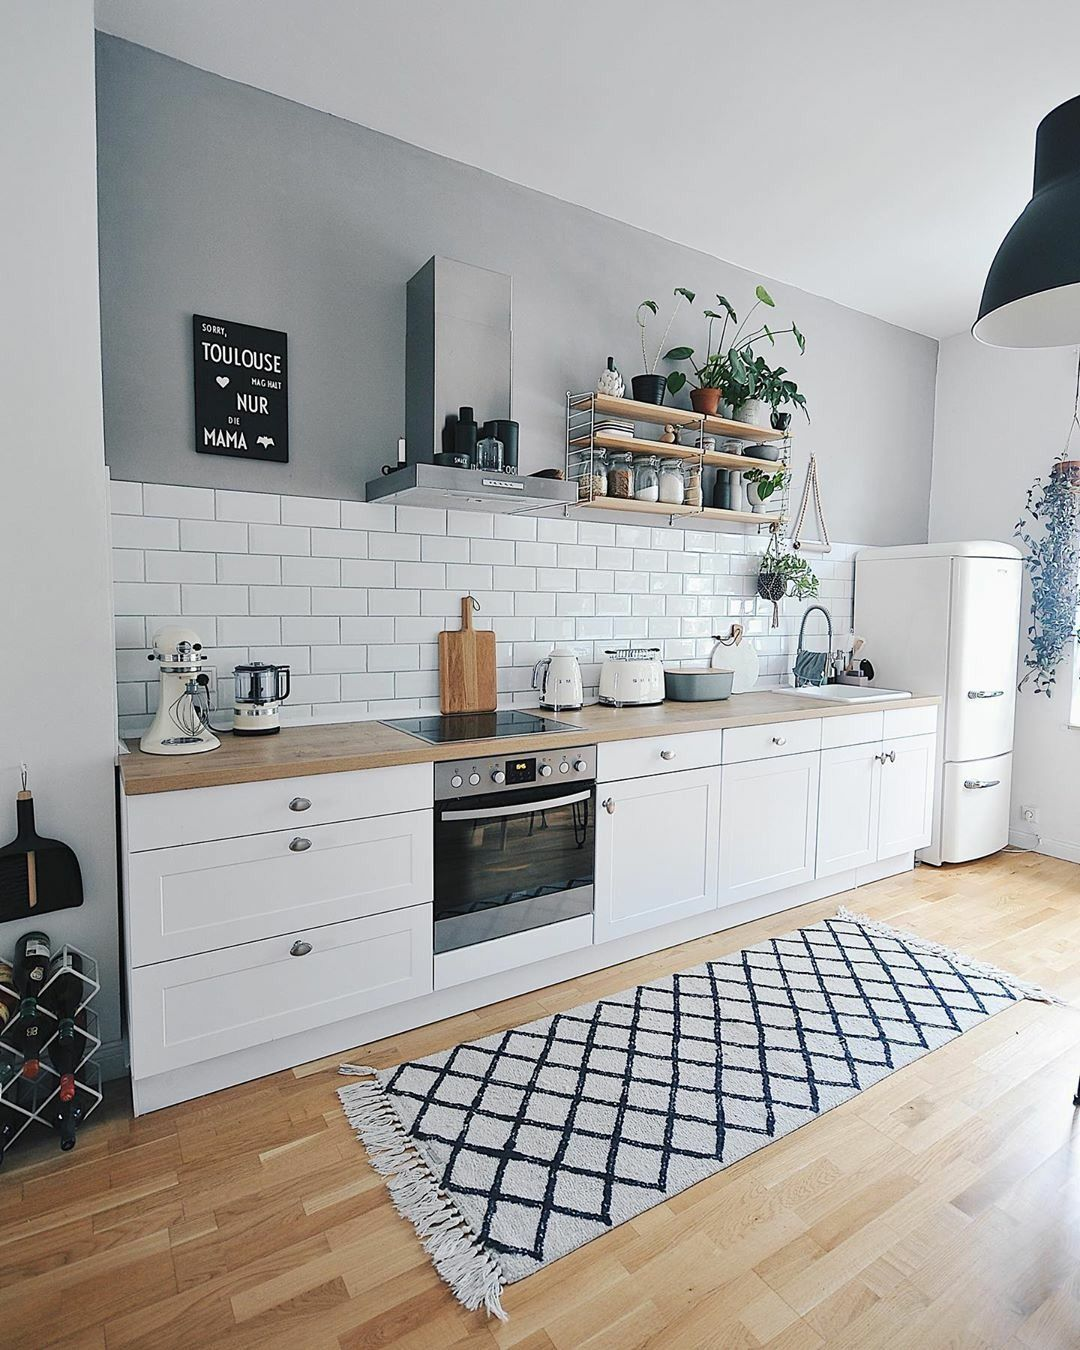 Look For Inspiration Everywhere The Perfect Scandinavian Style Home In 2020 Scandinavian Kitchen Design Kitchen Design Small Kitchen Interior